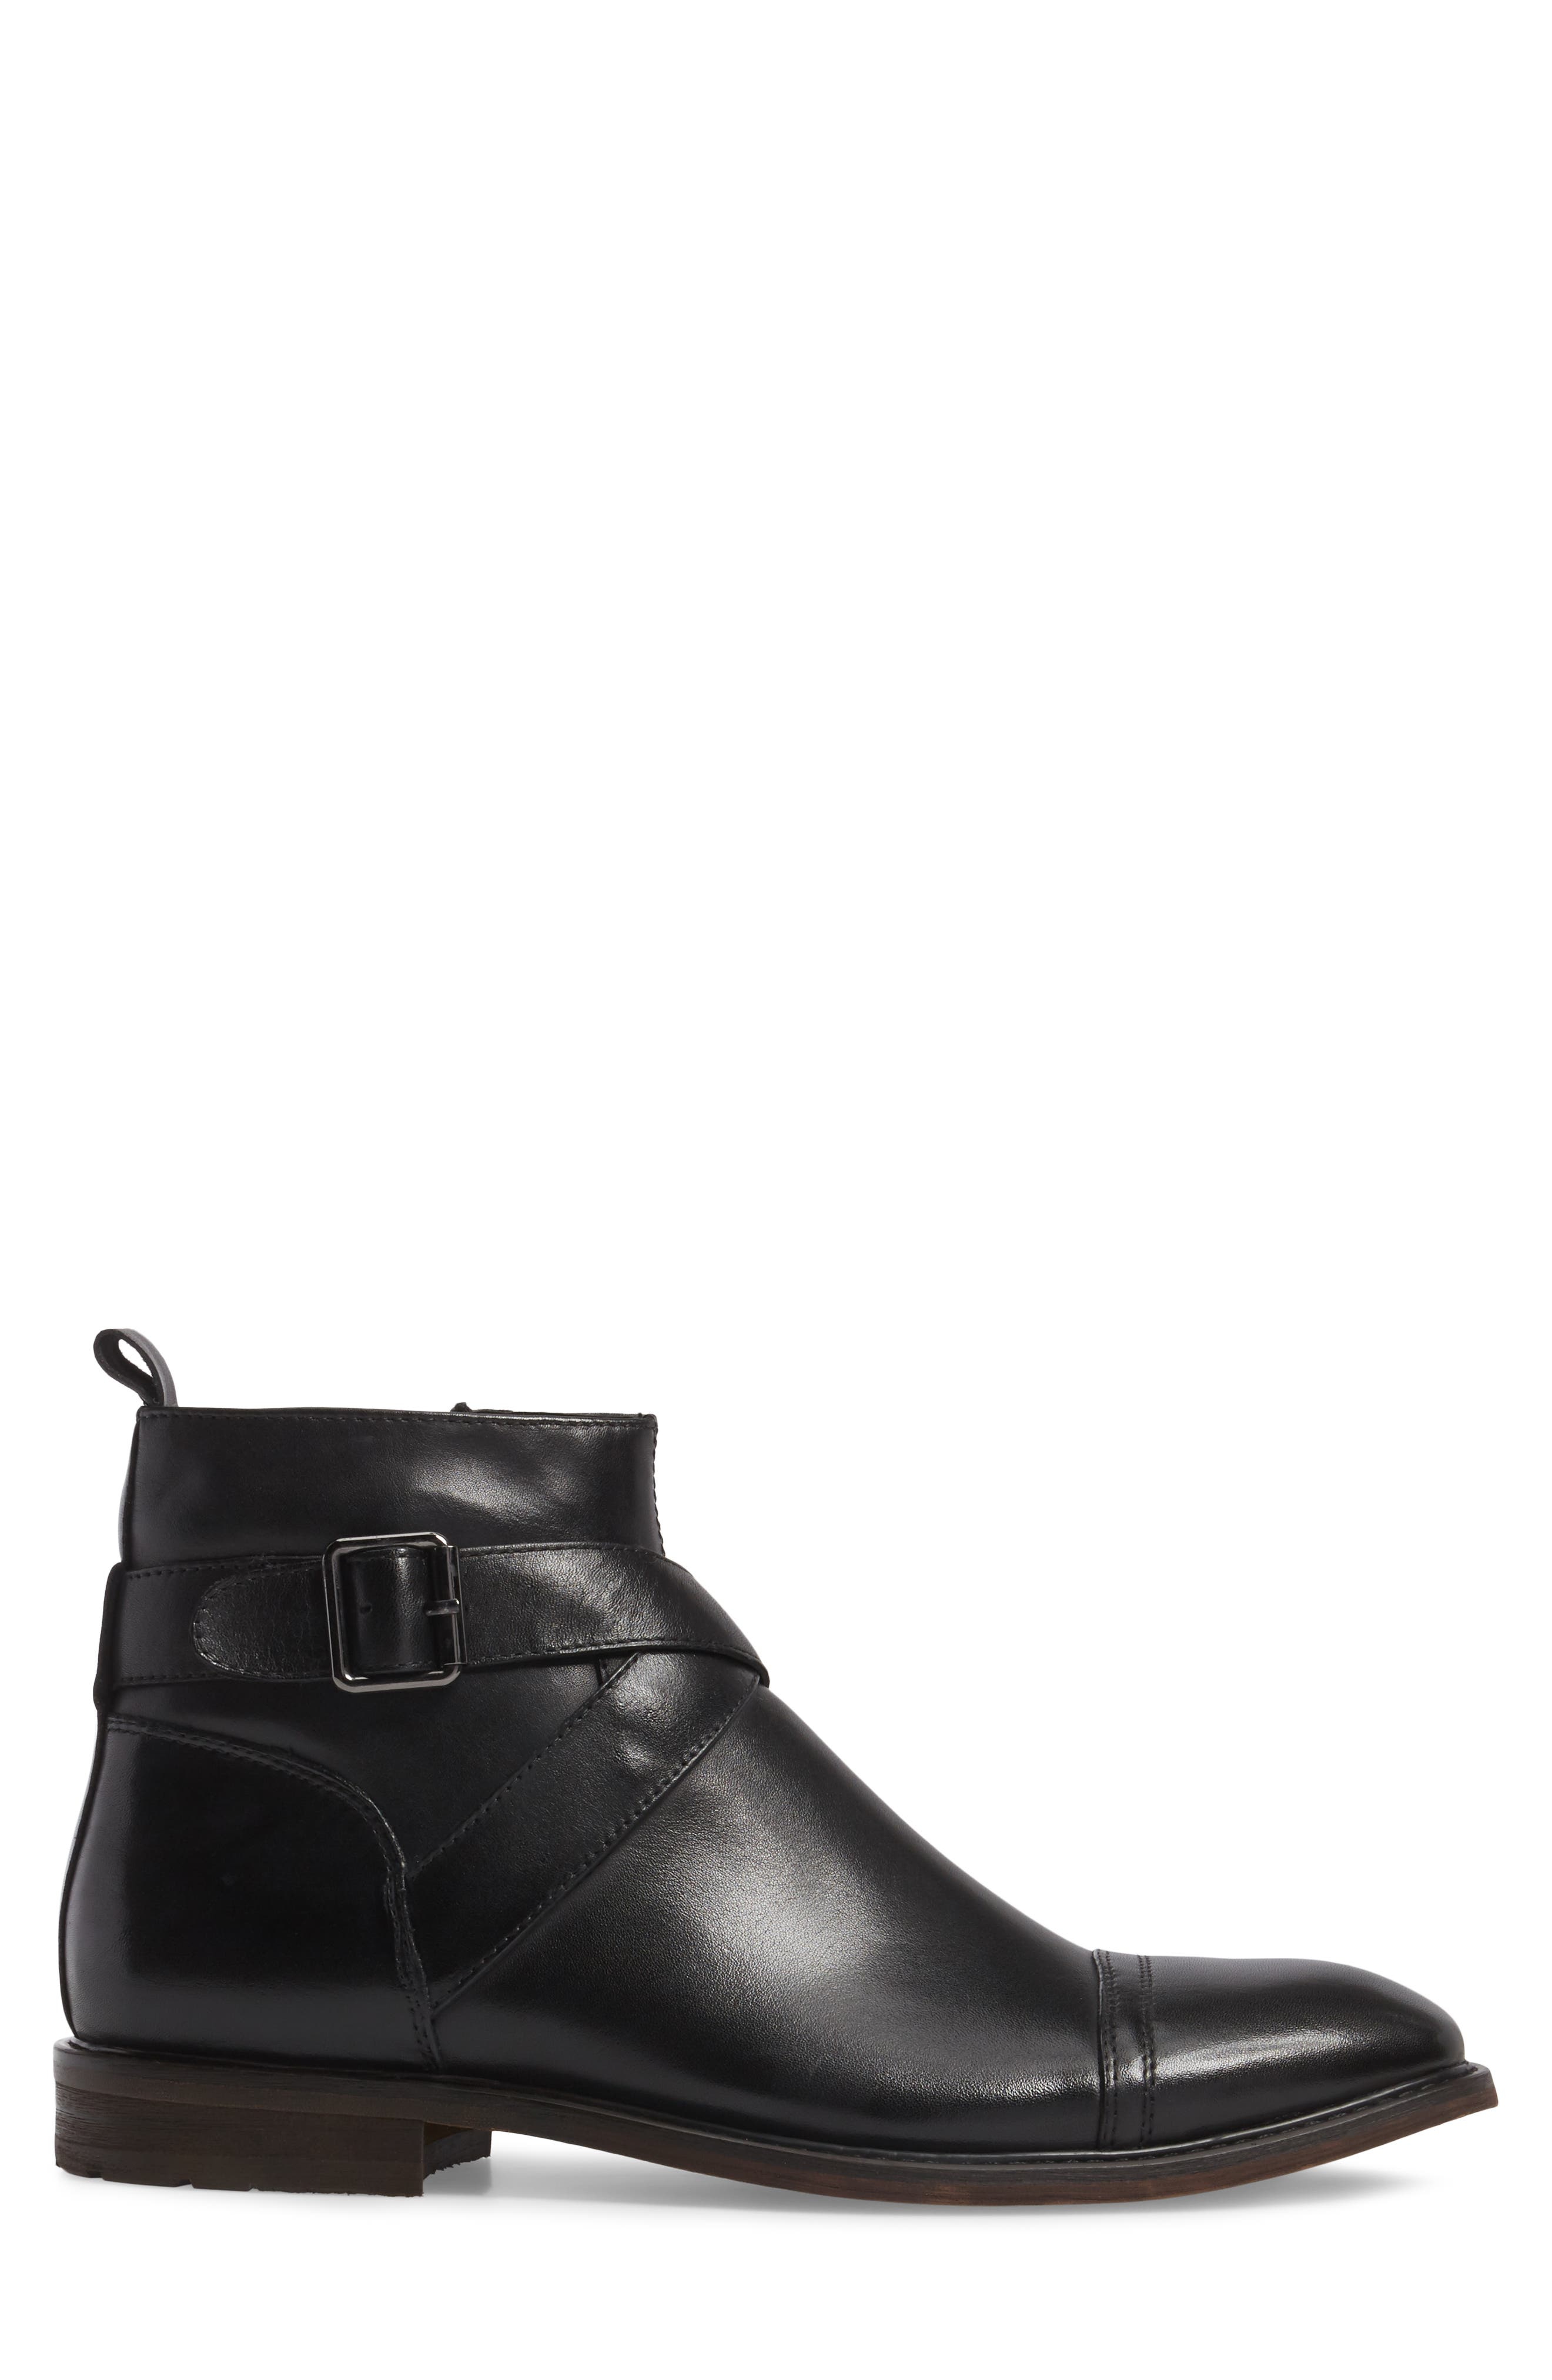 Edmond Zip Boot,                             Alternate thumbnail 3, color,                             Black Leather